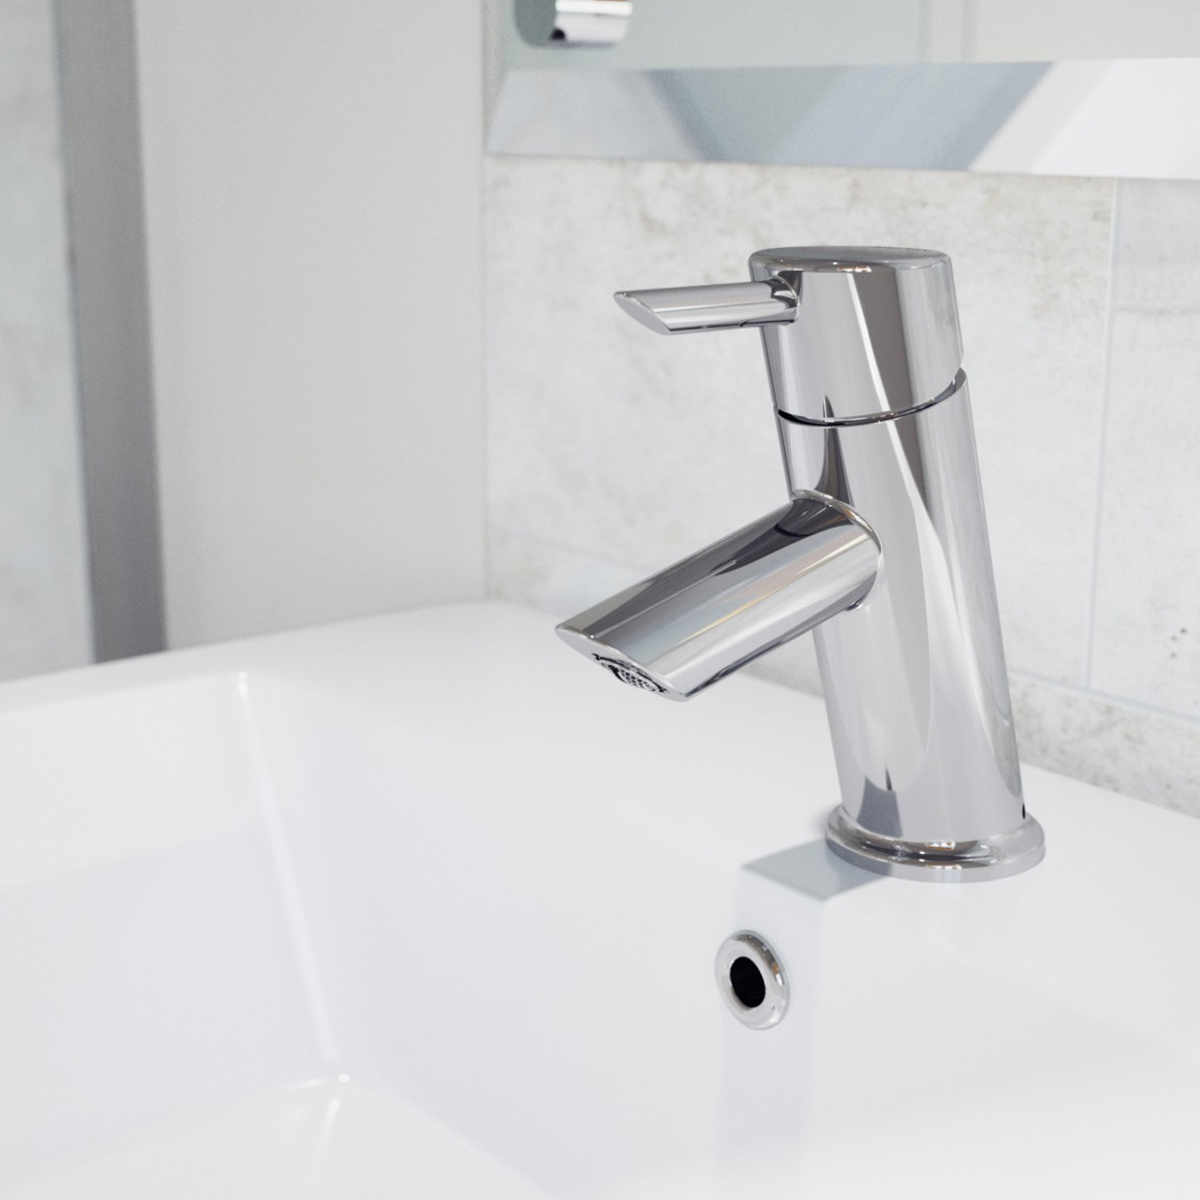 Bristan Acute Basin Mixer Tap without Waste - Chrome